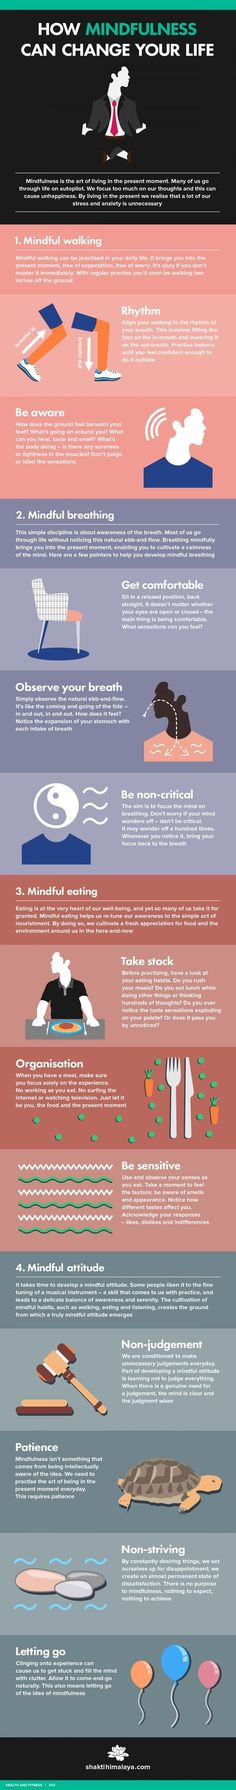 How Mindfulness Can Change Your Life #infographic. This infographic serves to give you a guide on how to be conscious with others' needs and how you should be mindful for them. Your daily encounter with others could define you as a person so check if you can practice this one.